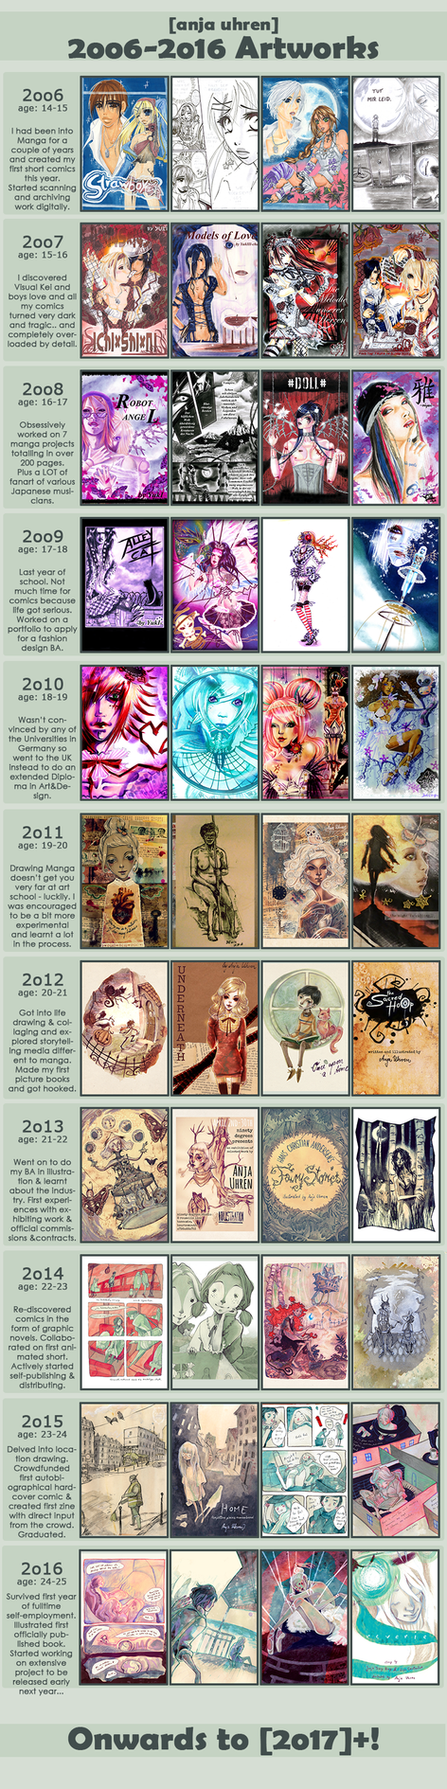 Improvement Meme 2006-2016 by anja-uhren